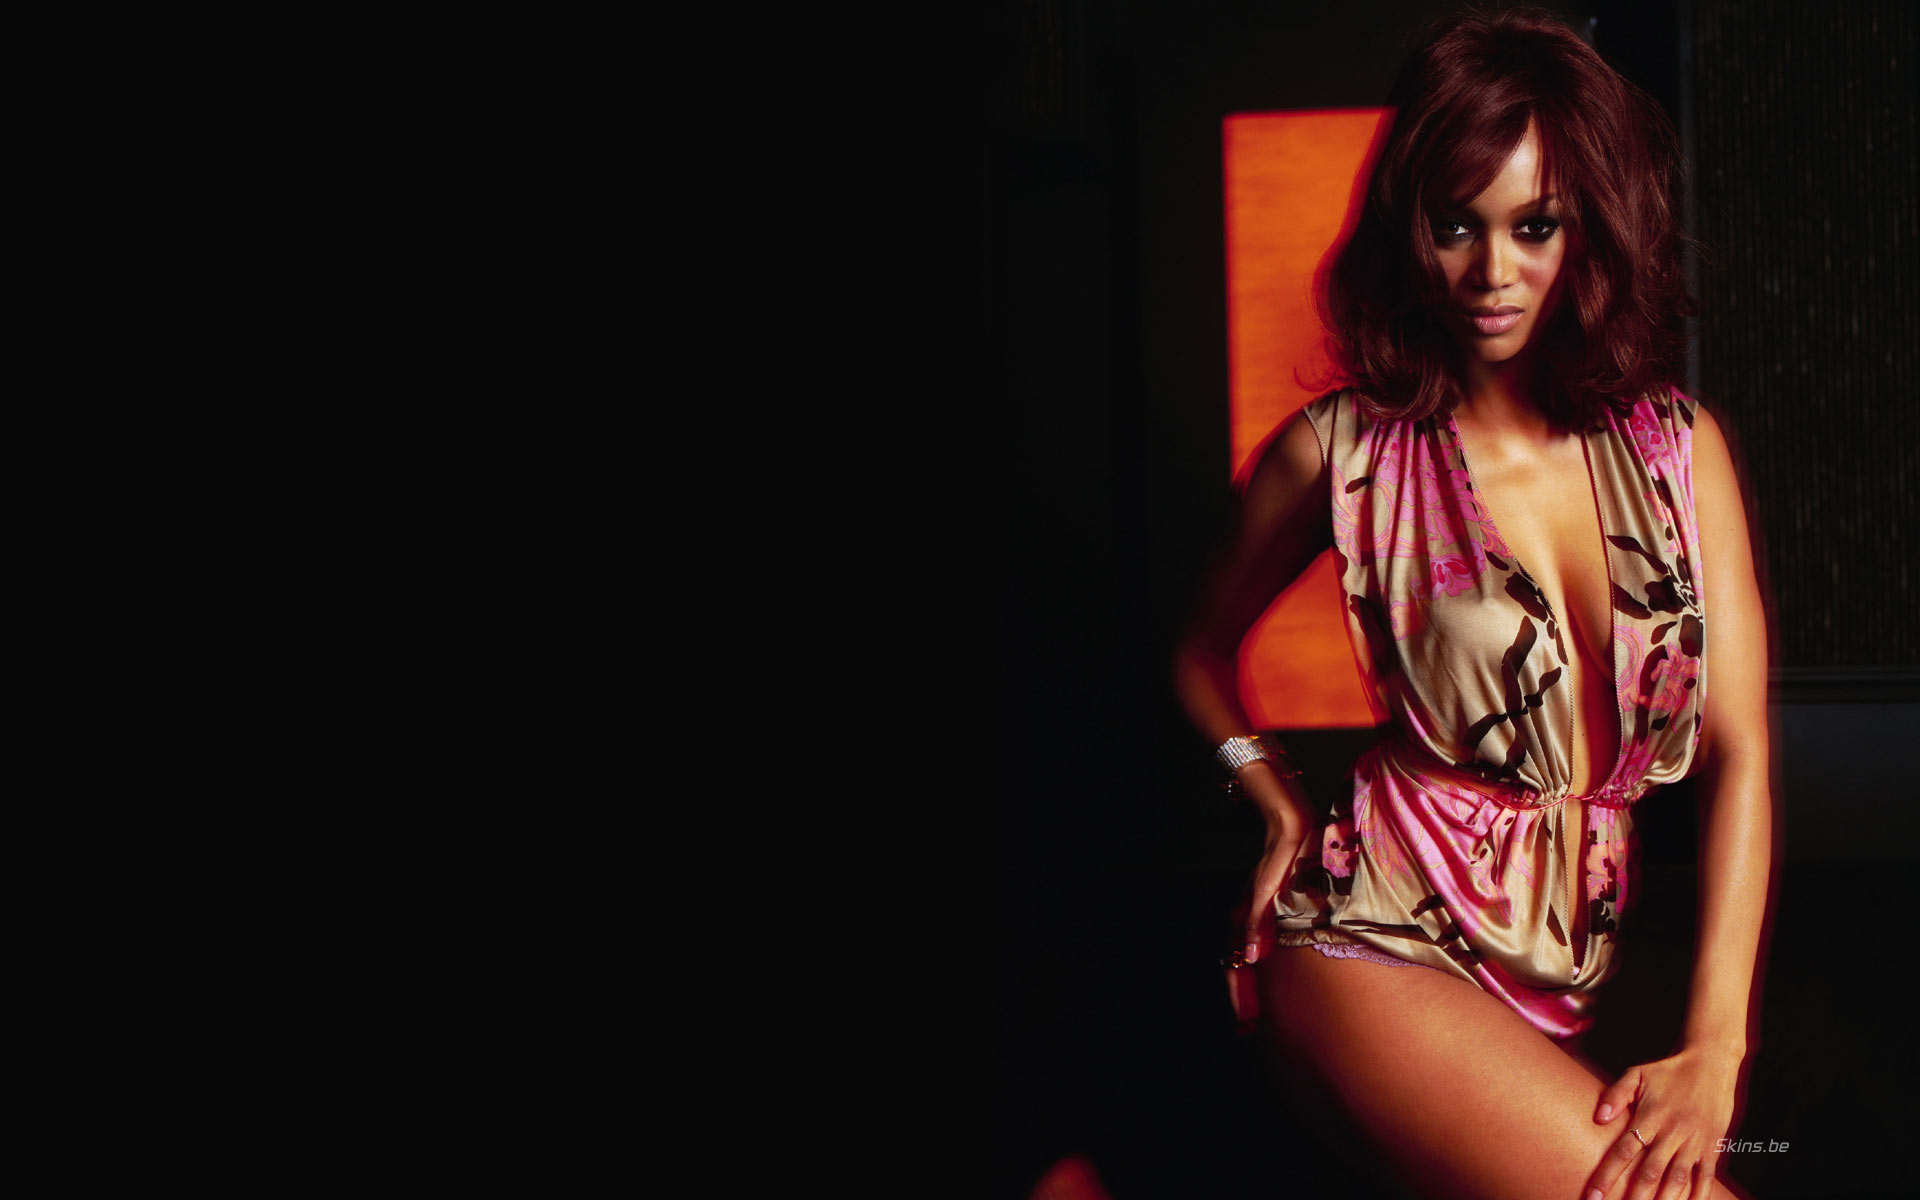 hotest tyra banks sexy hd wallpapers all hd wallpapers